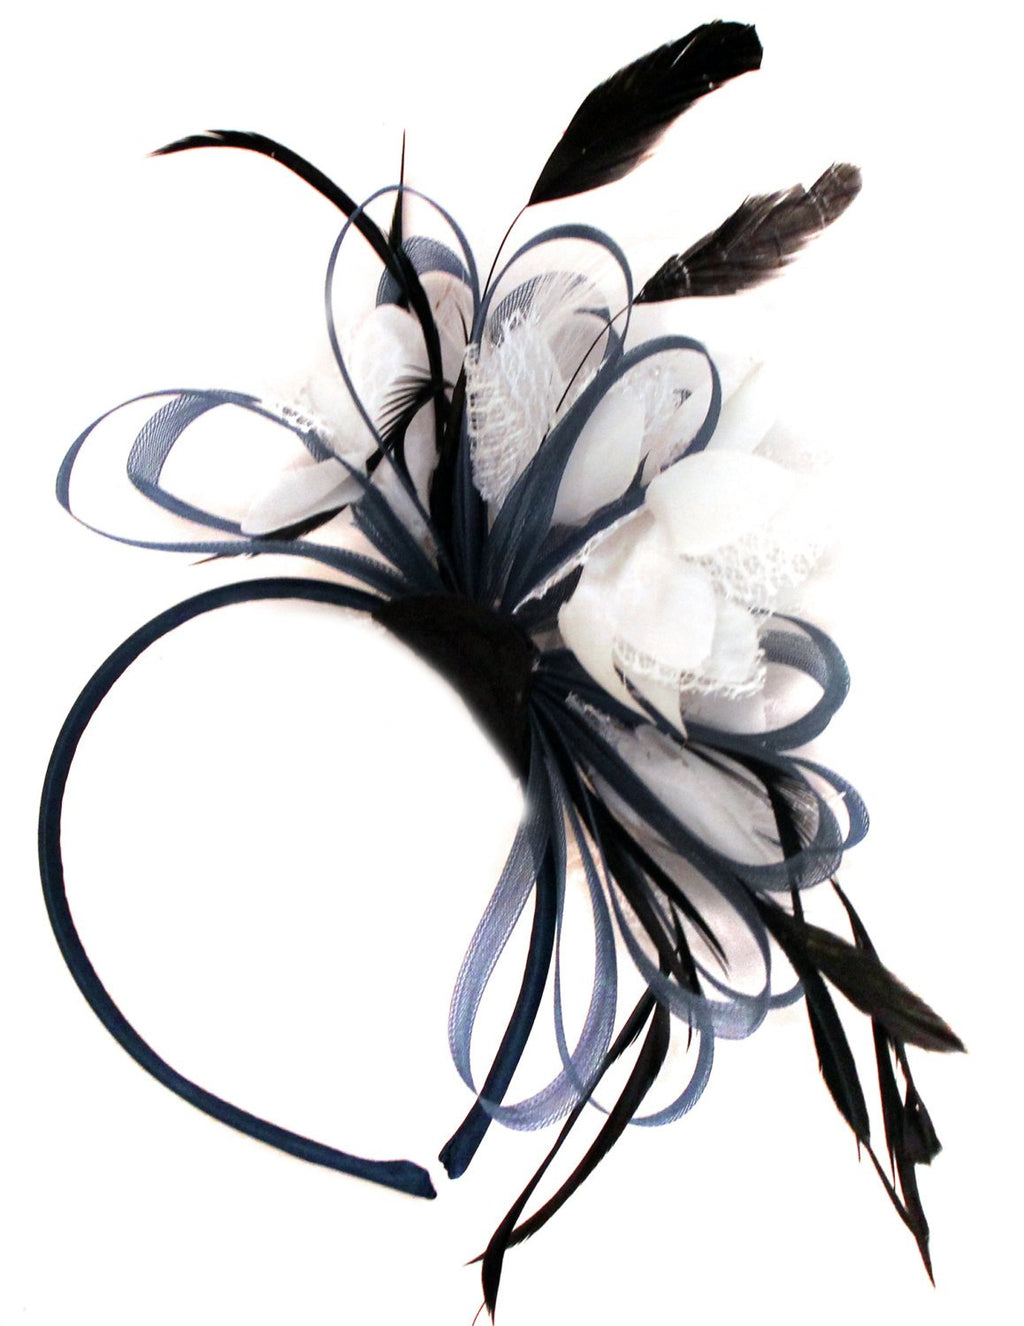 Caprilite Navy Blue Hoop & White Feathers Fascinator Headband Ascot Wedding